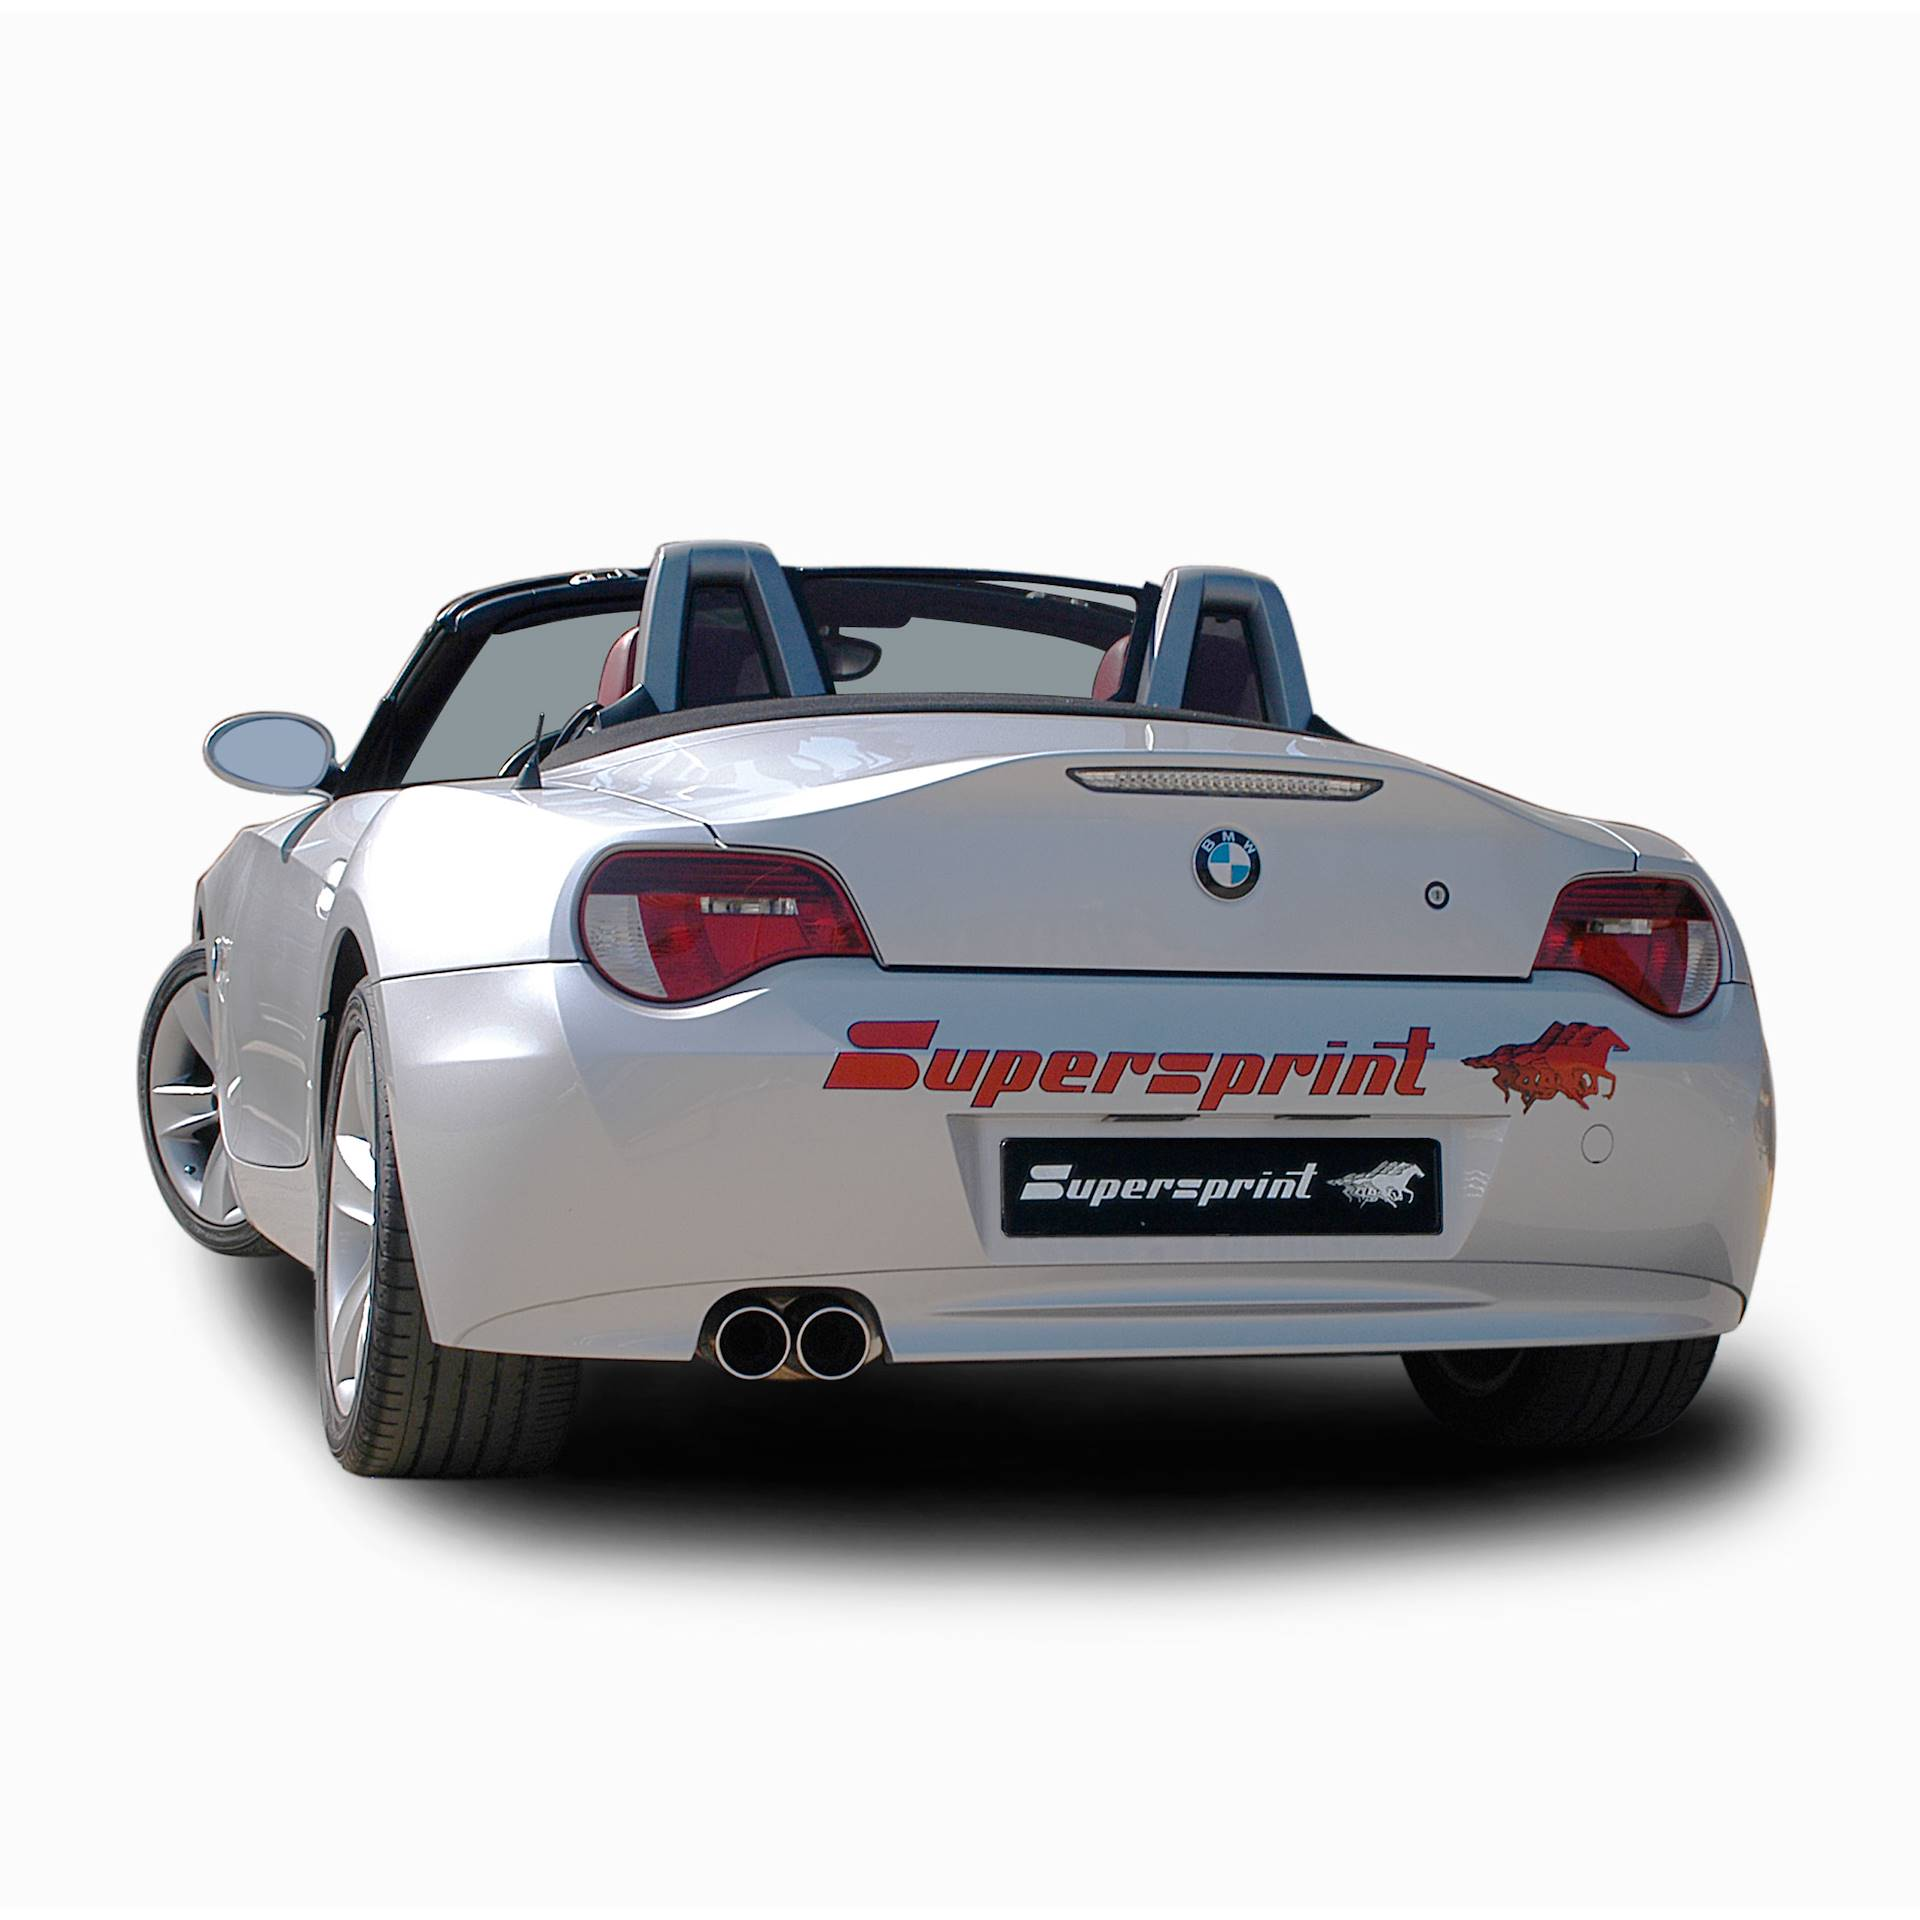 BMW - BMW Z4 Roadster 2.0i (4 cyl.) '05 -> '09